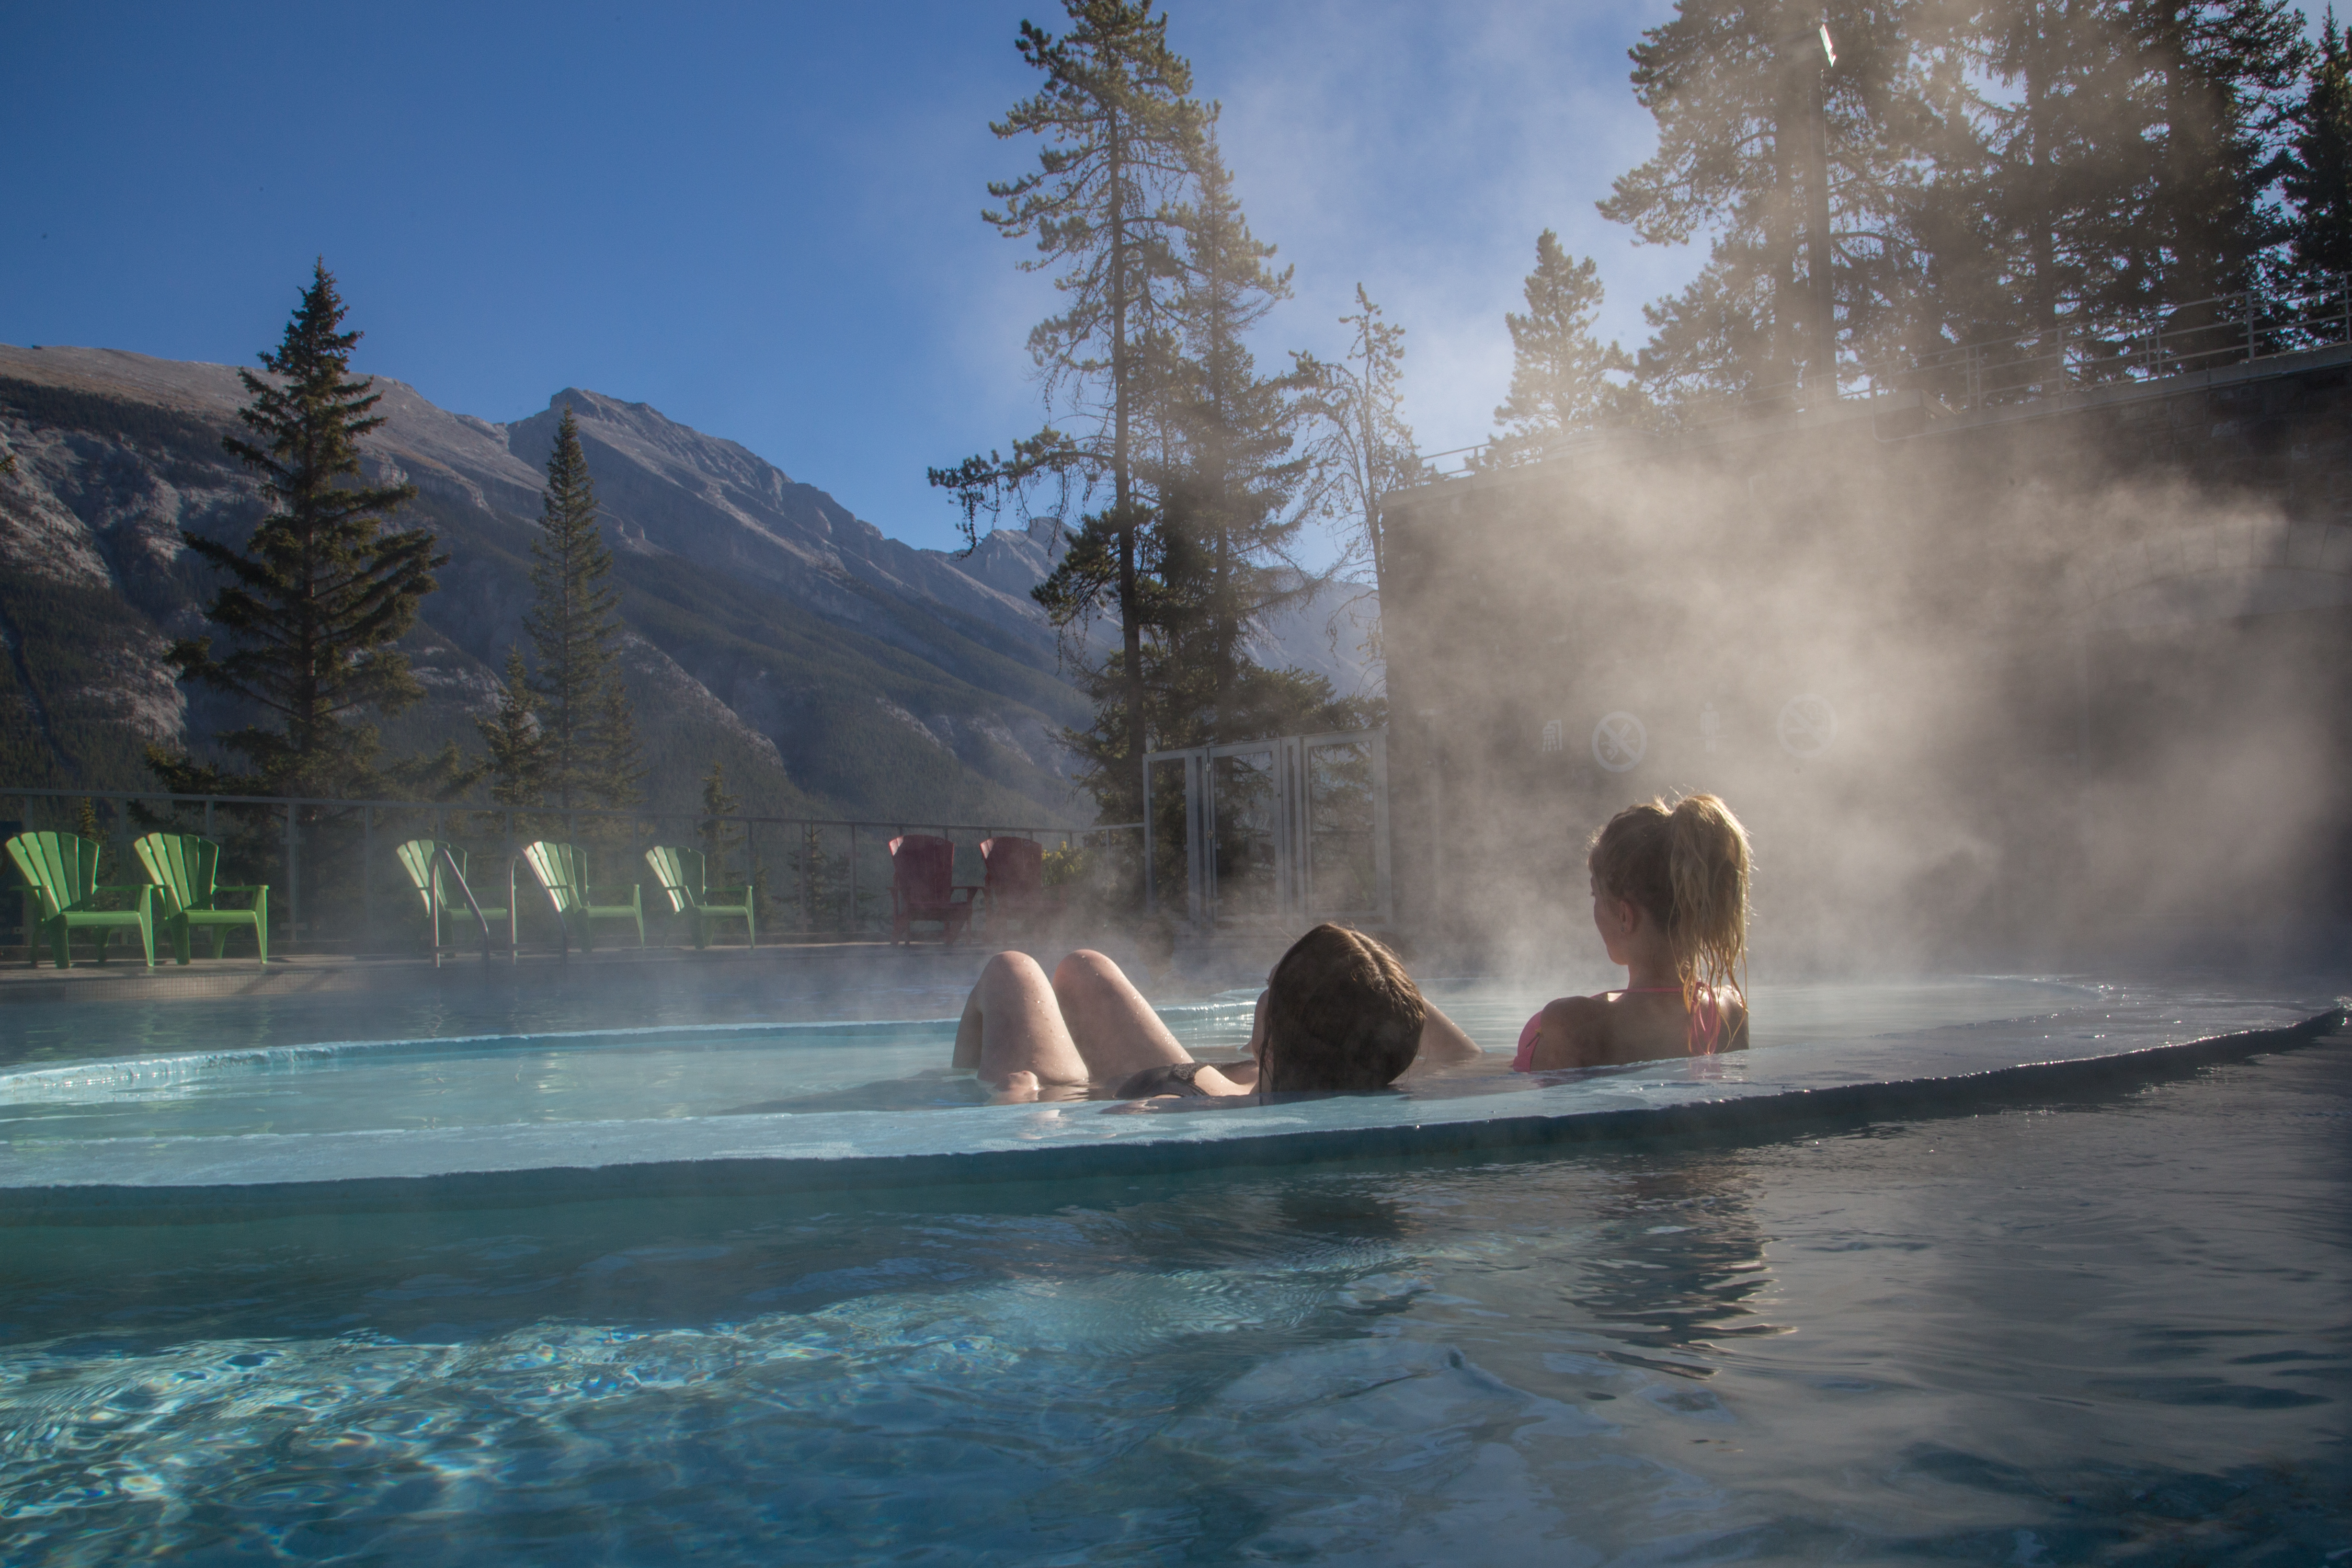 CRHS-BUHS-Young Women in Hot Springs-Credit-Parks Canada-Olivia Robinson